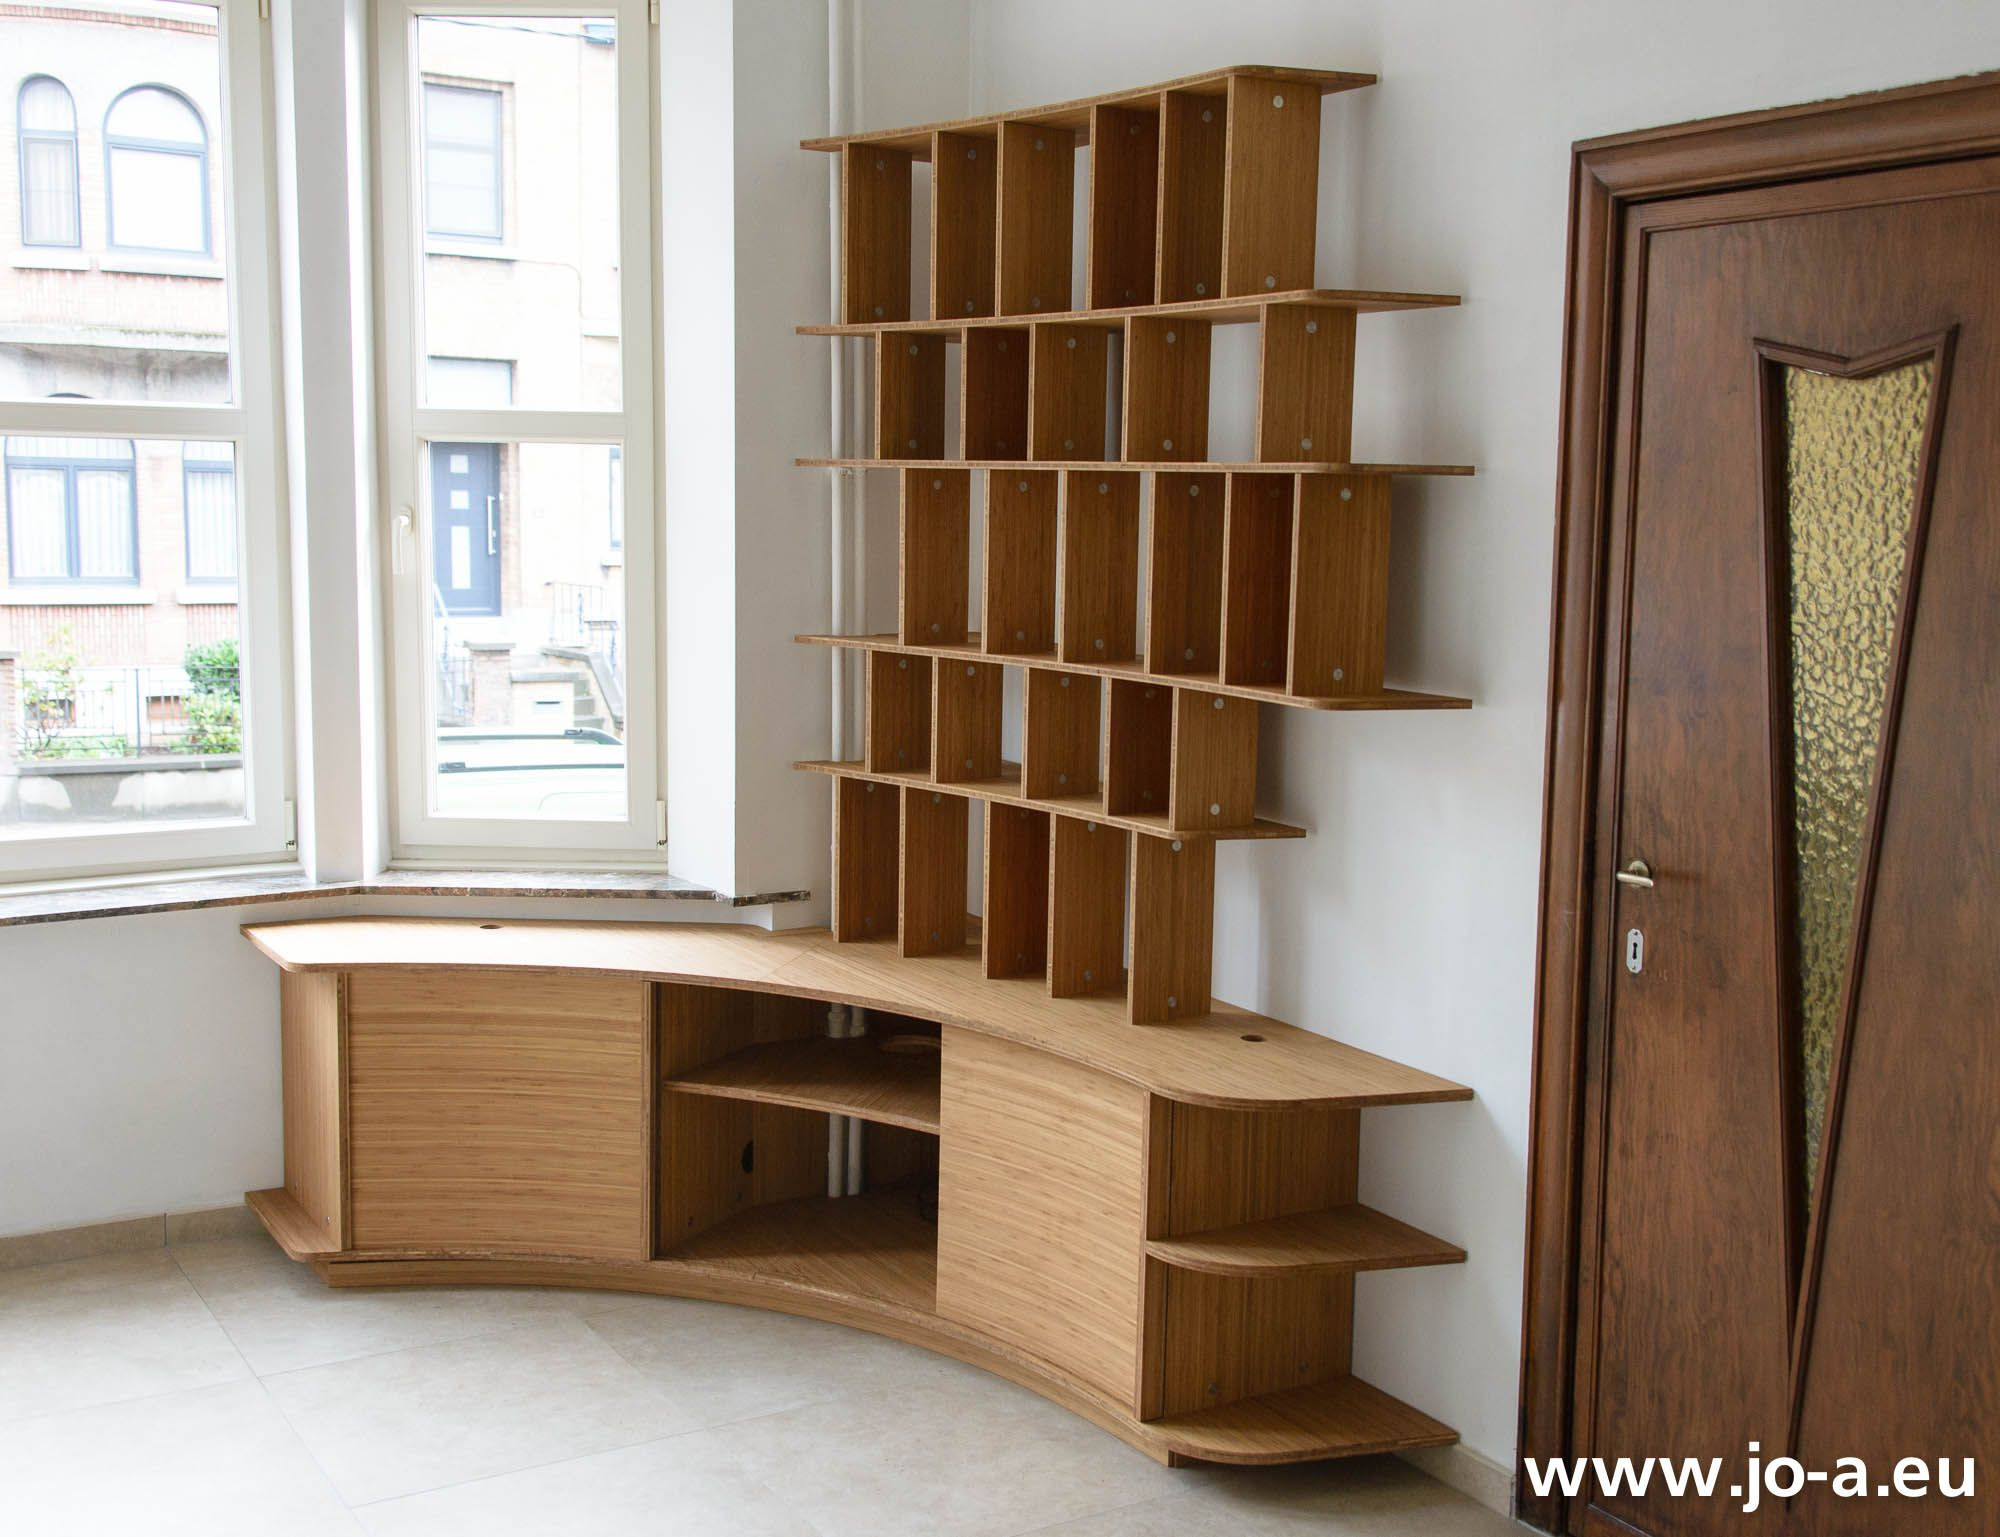 Custom Tv Cabinet And Bookcase Design By Jo A Meuble Tv Et  # Meuble Tv Et Bibliotheque